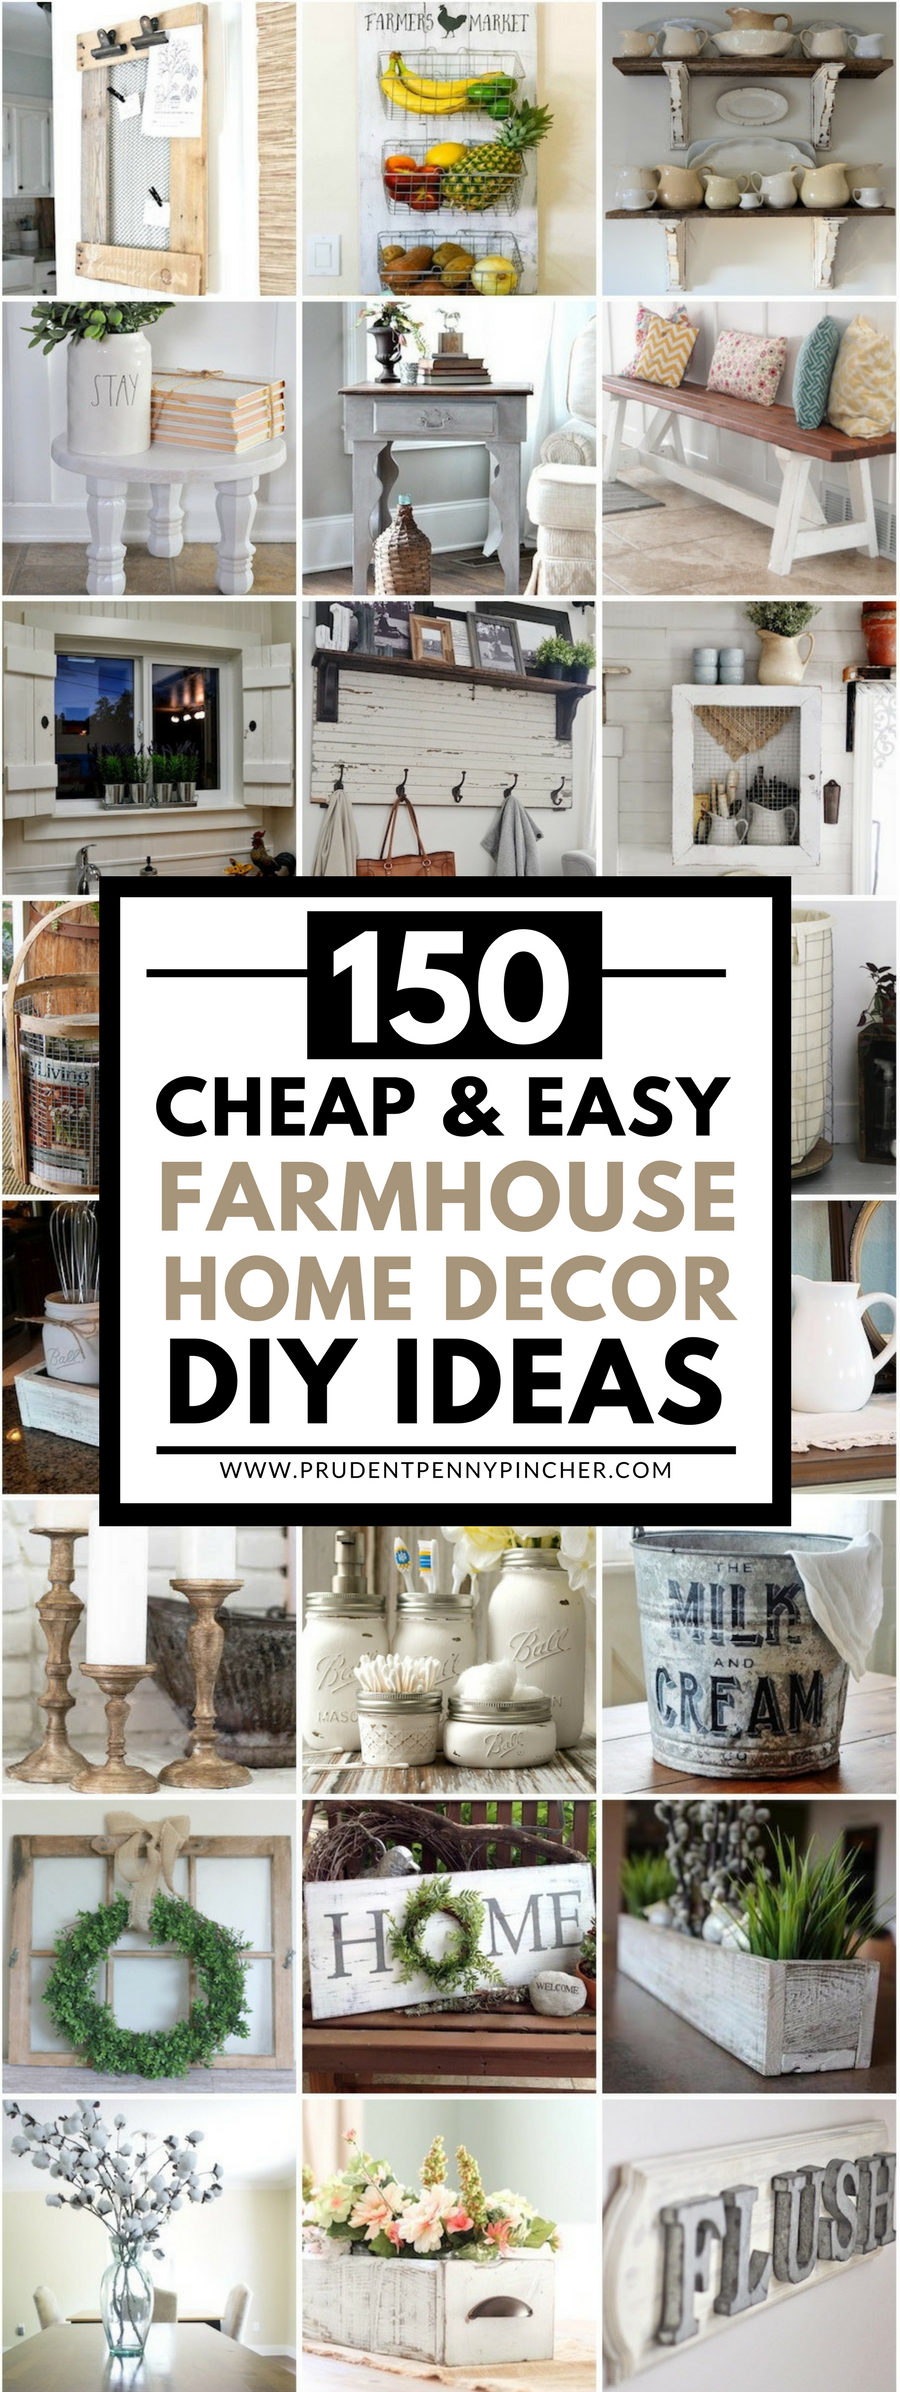 150 Cheap And Easy Diy Farmhouse Style Home Decor Ideas: cheap home storage ideas